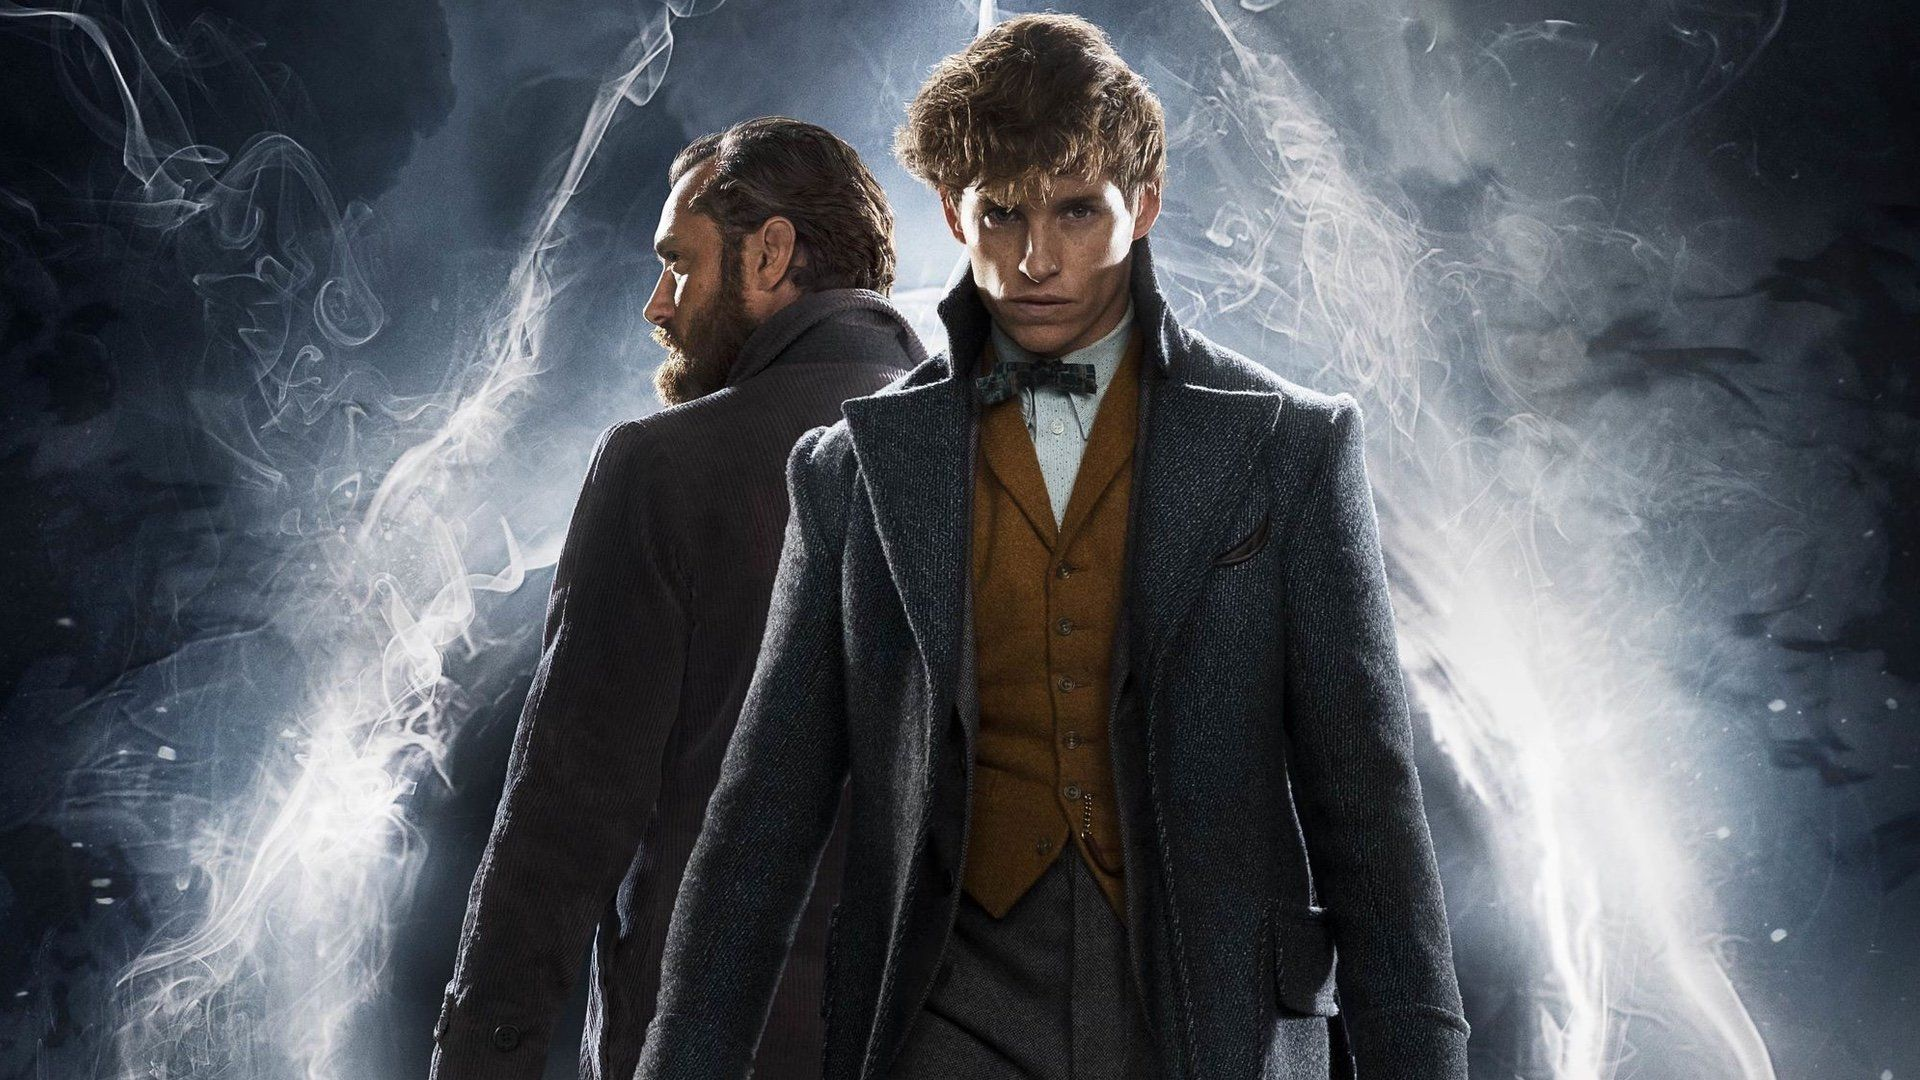 'Fantastic Beasts: The Crimes Of Grindelwald' Is A Visual Feast But Falls Short Of The Bar Set By The Original - HuffPost